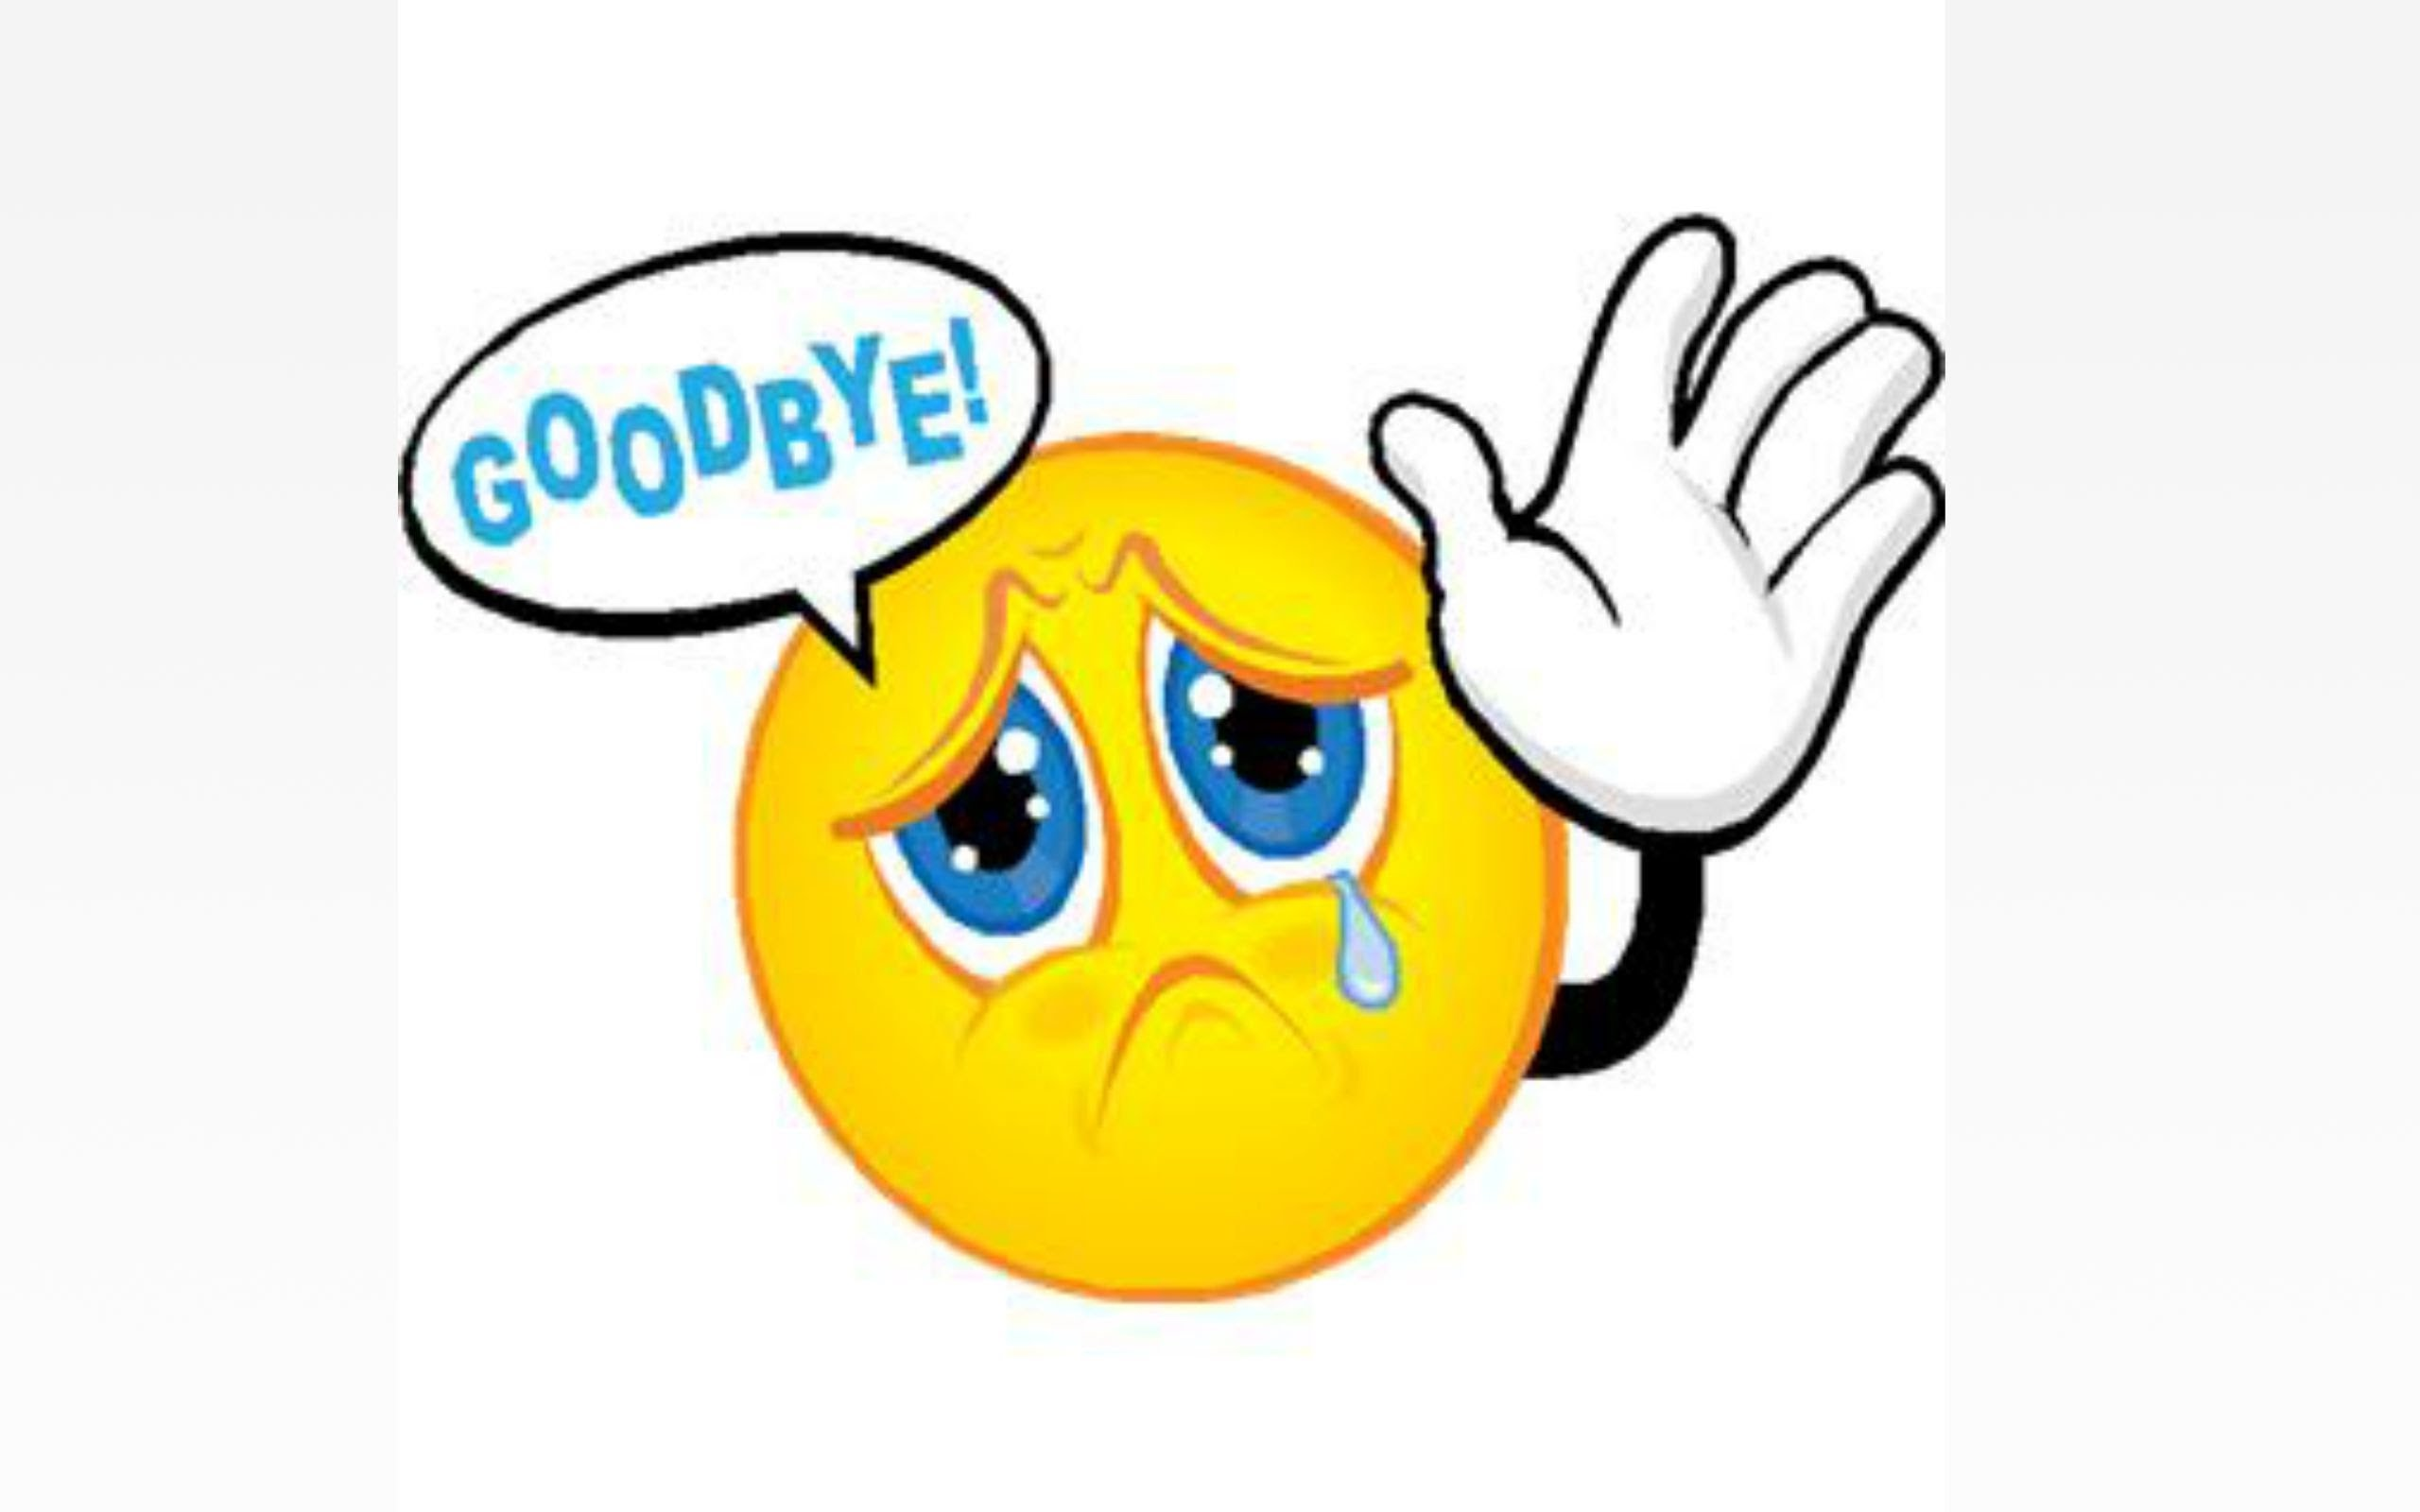 I Will Miss You Clipart at GetDrawings.com.